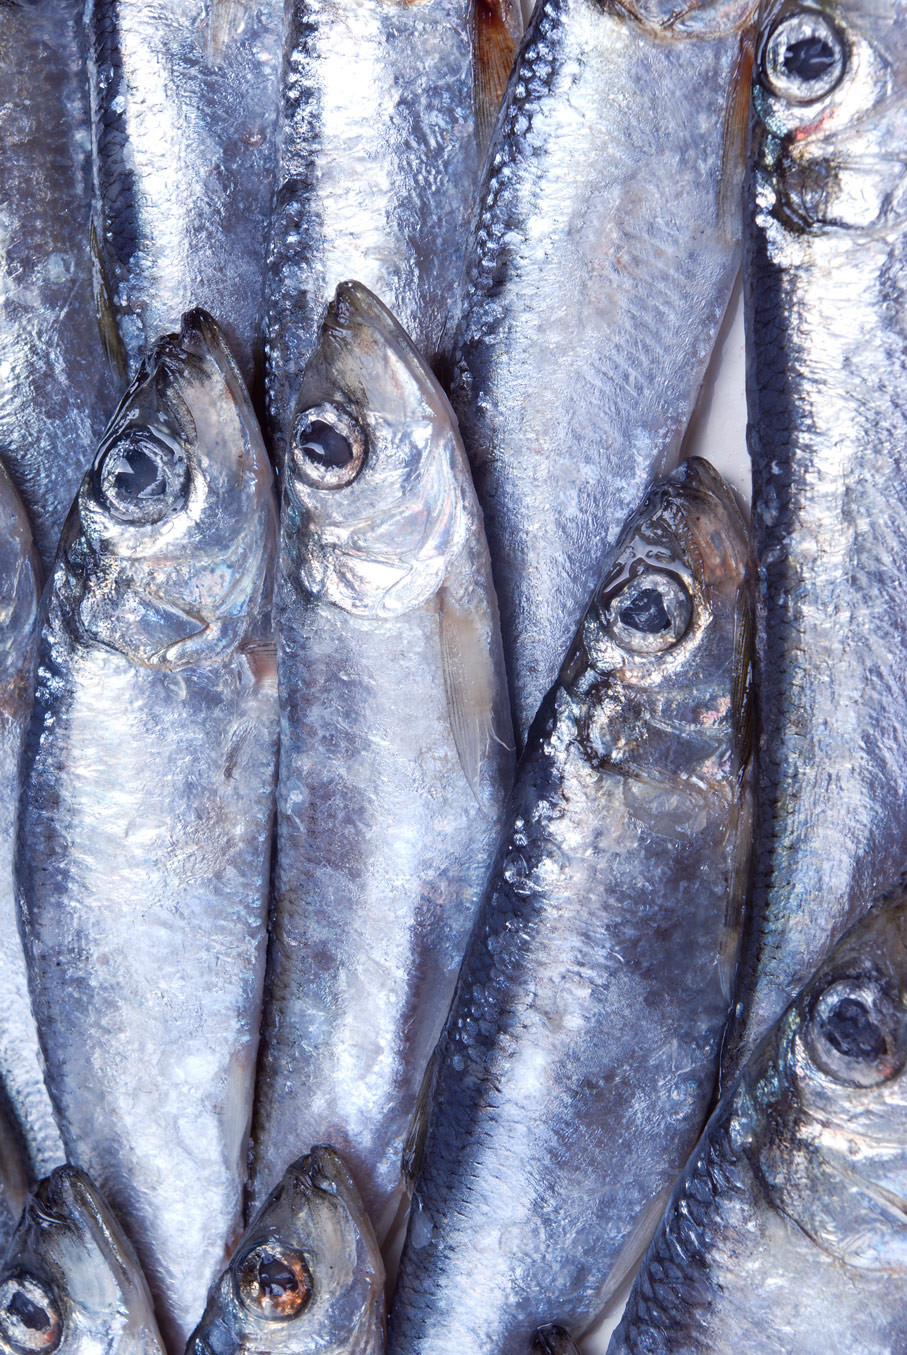 Omega 3's for weight loss are found in fish